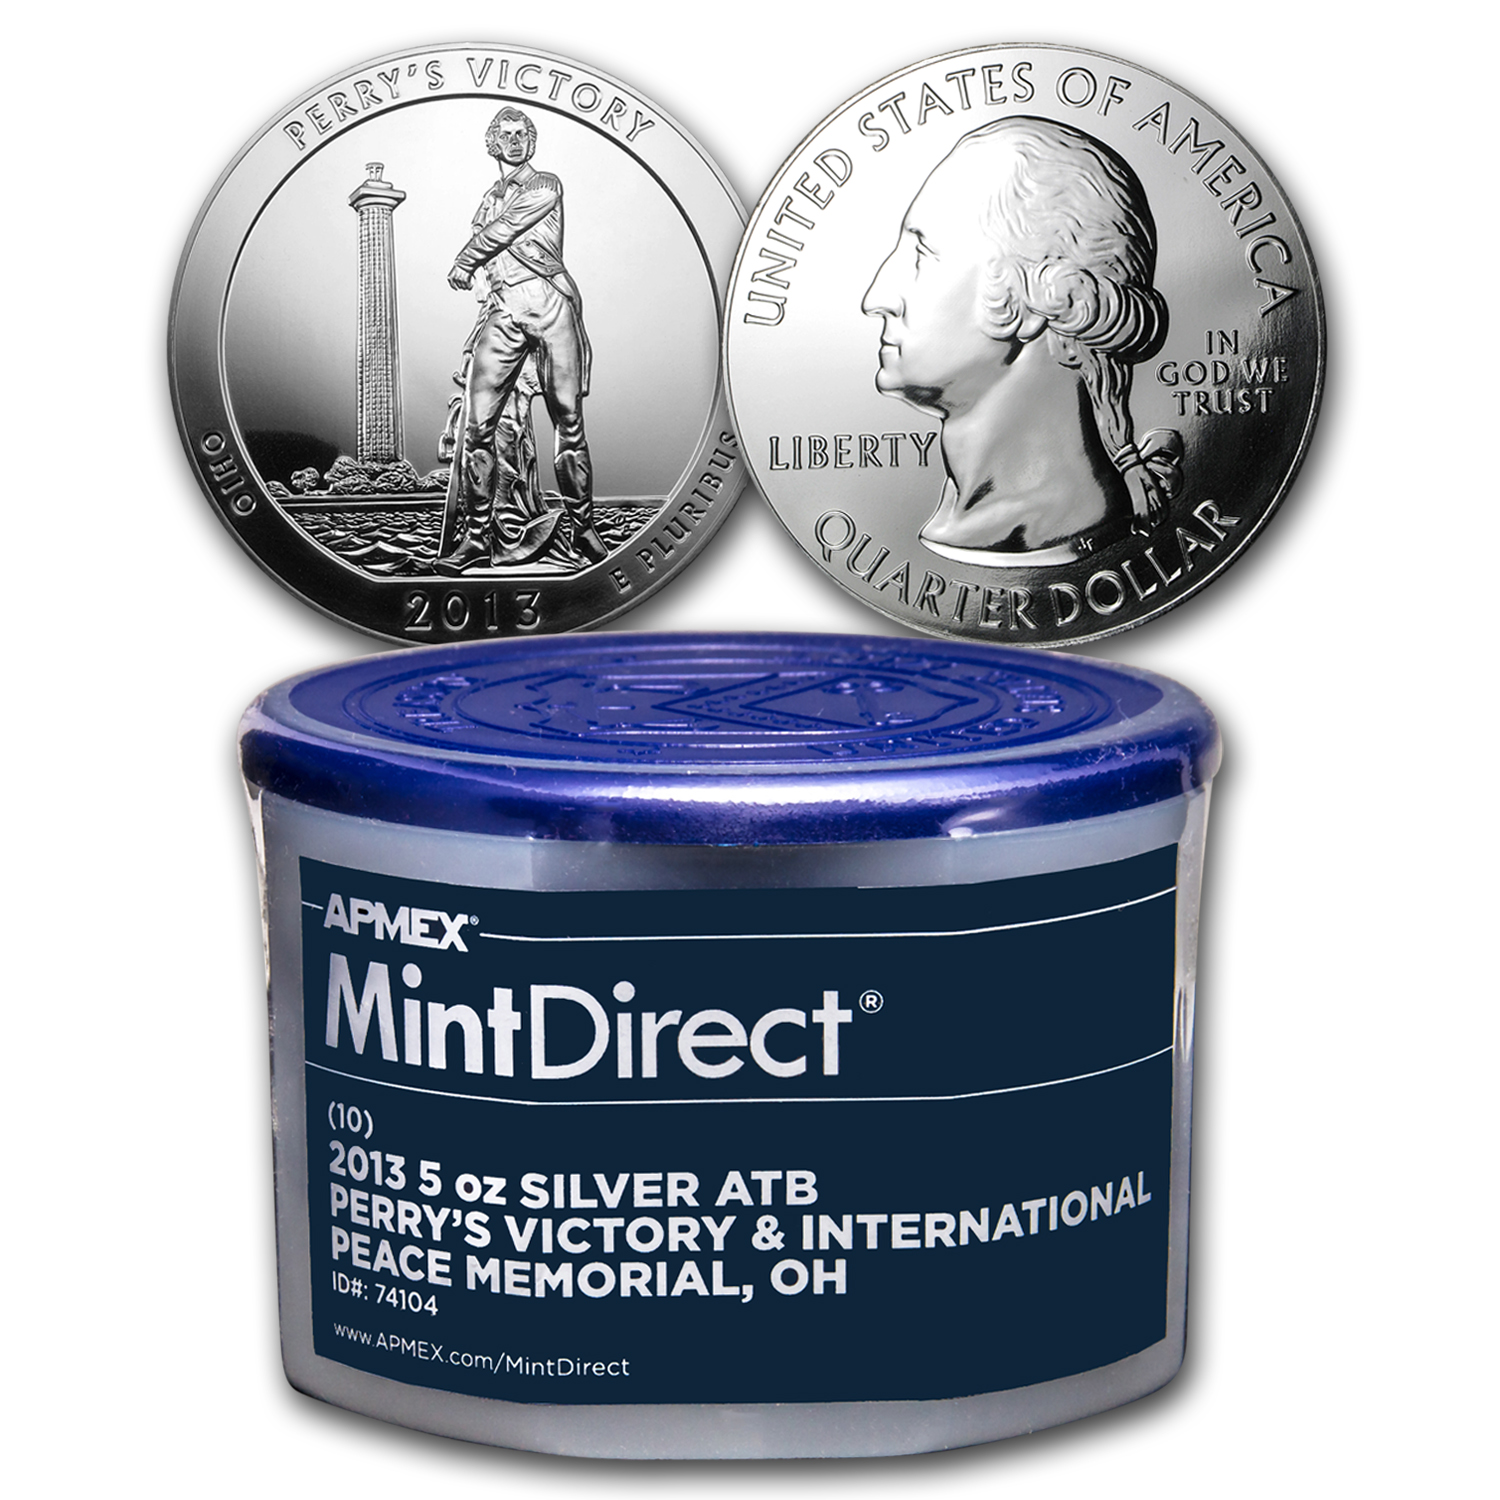 2013 5 oz Silver ATB Perry's Victory (10-Coin MintDirect® Tube)